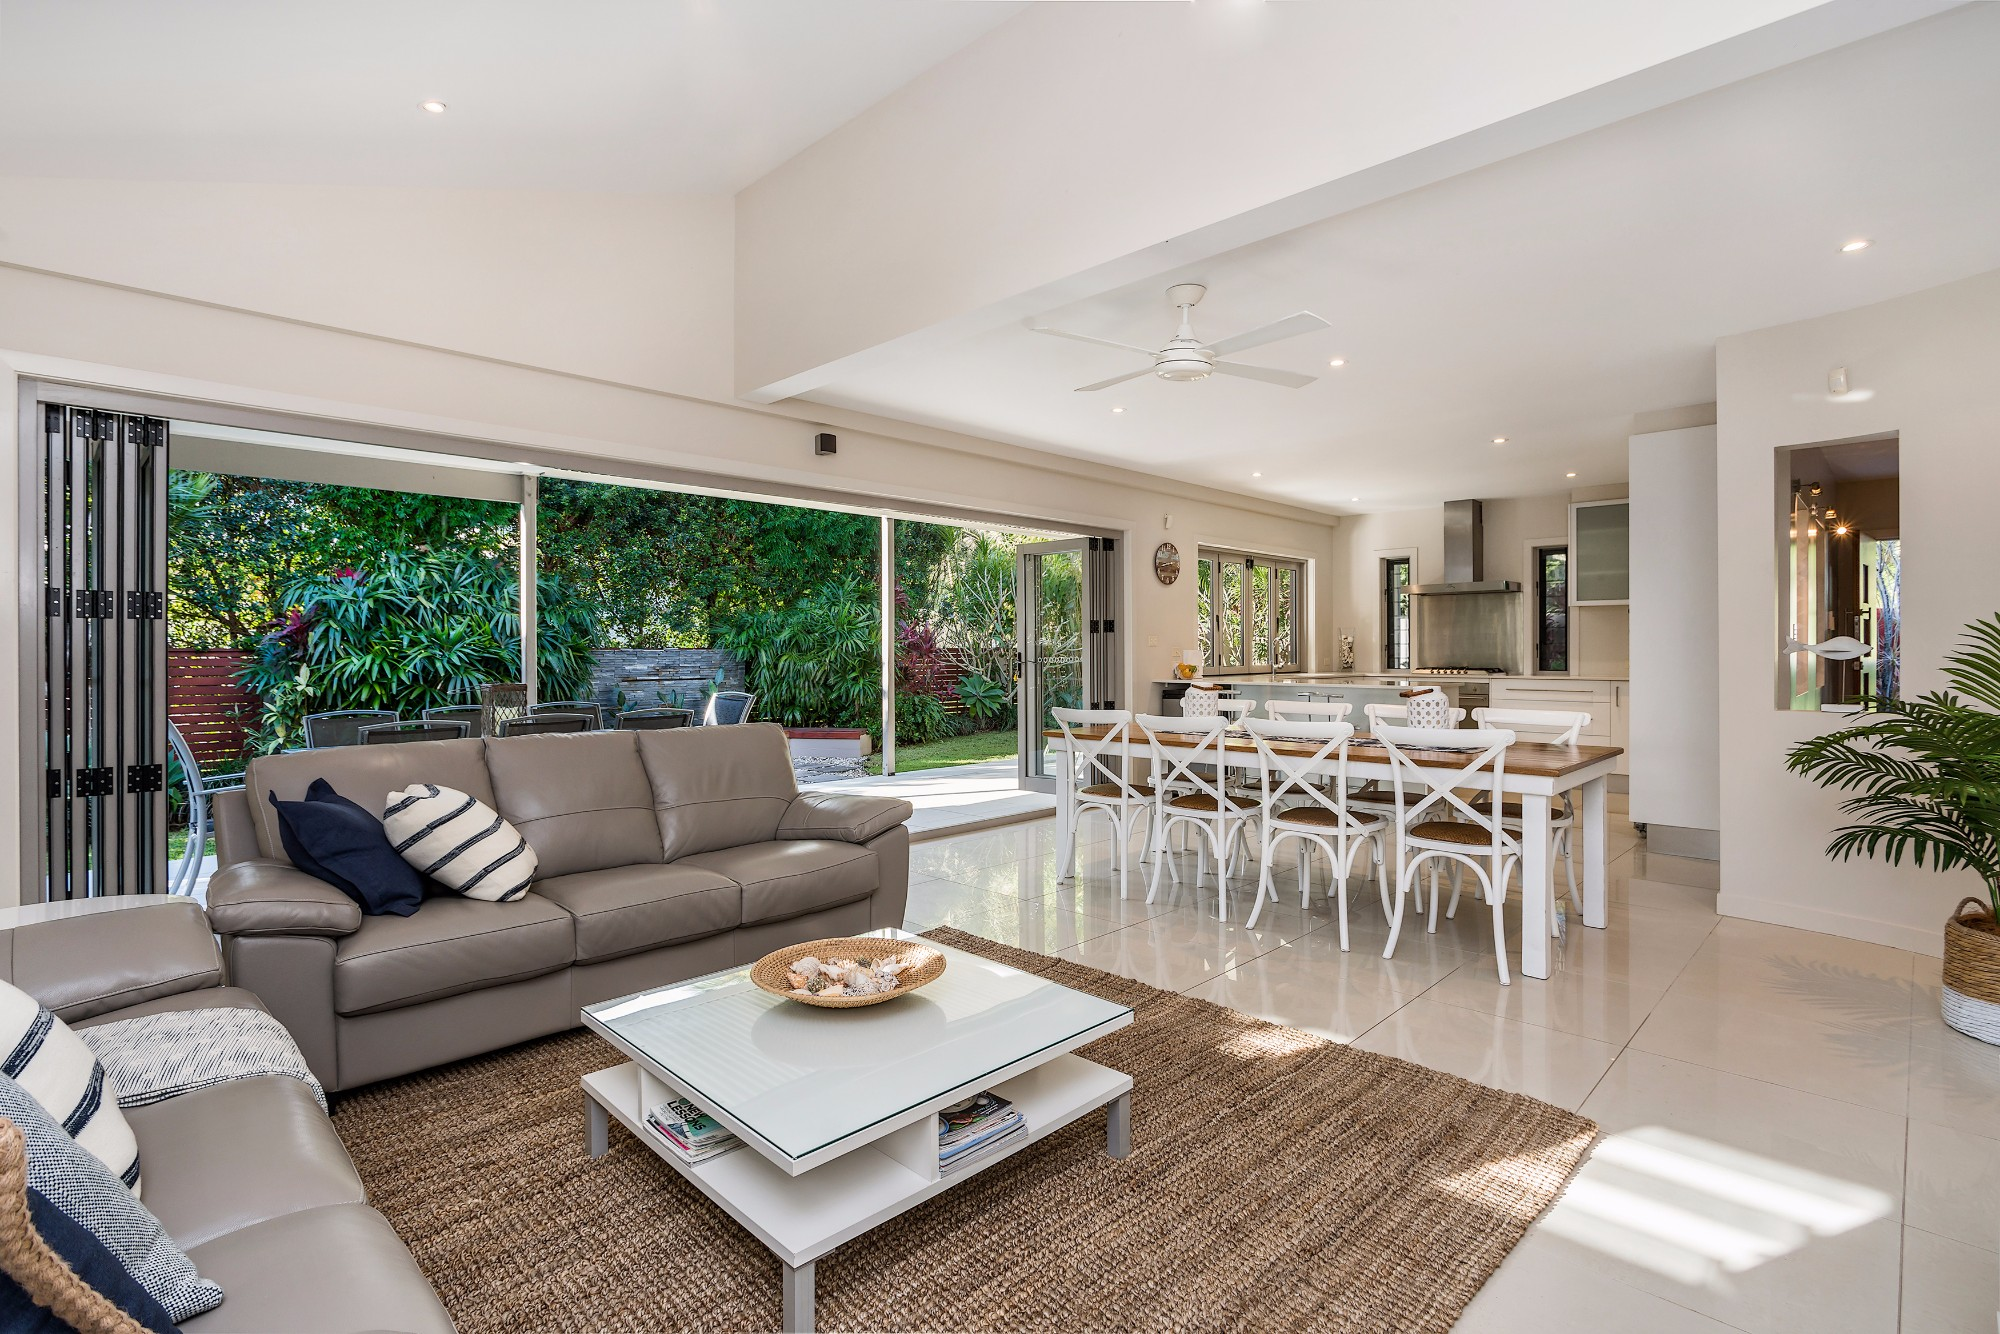 Byron beach style byron bay a perfect stay - Beach style living room ...